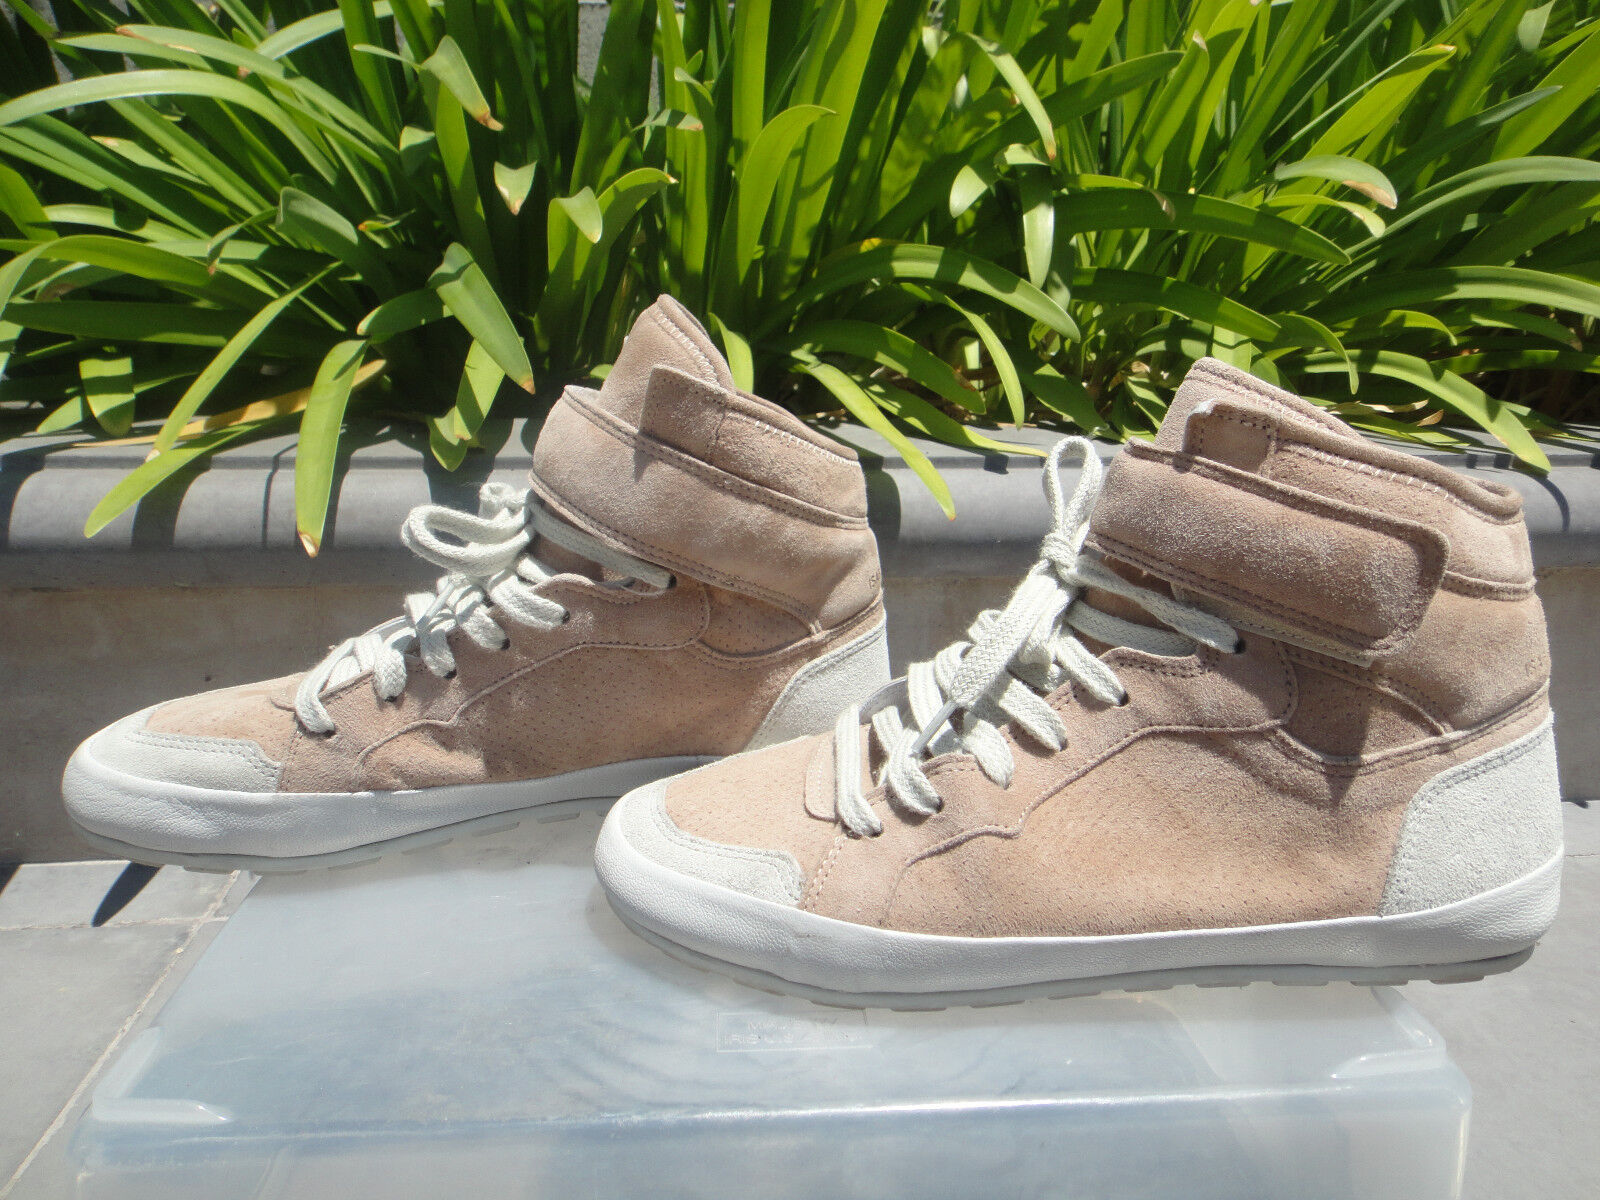 Isabel Marant Étoile BESSY Antique Pink Suede Leather Sneakers, EUR37, Portugal